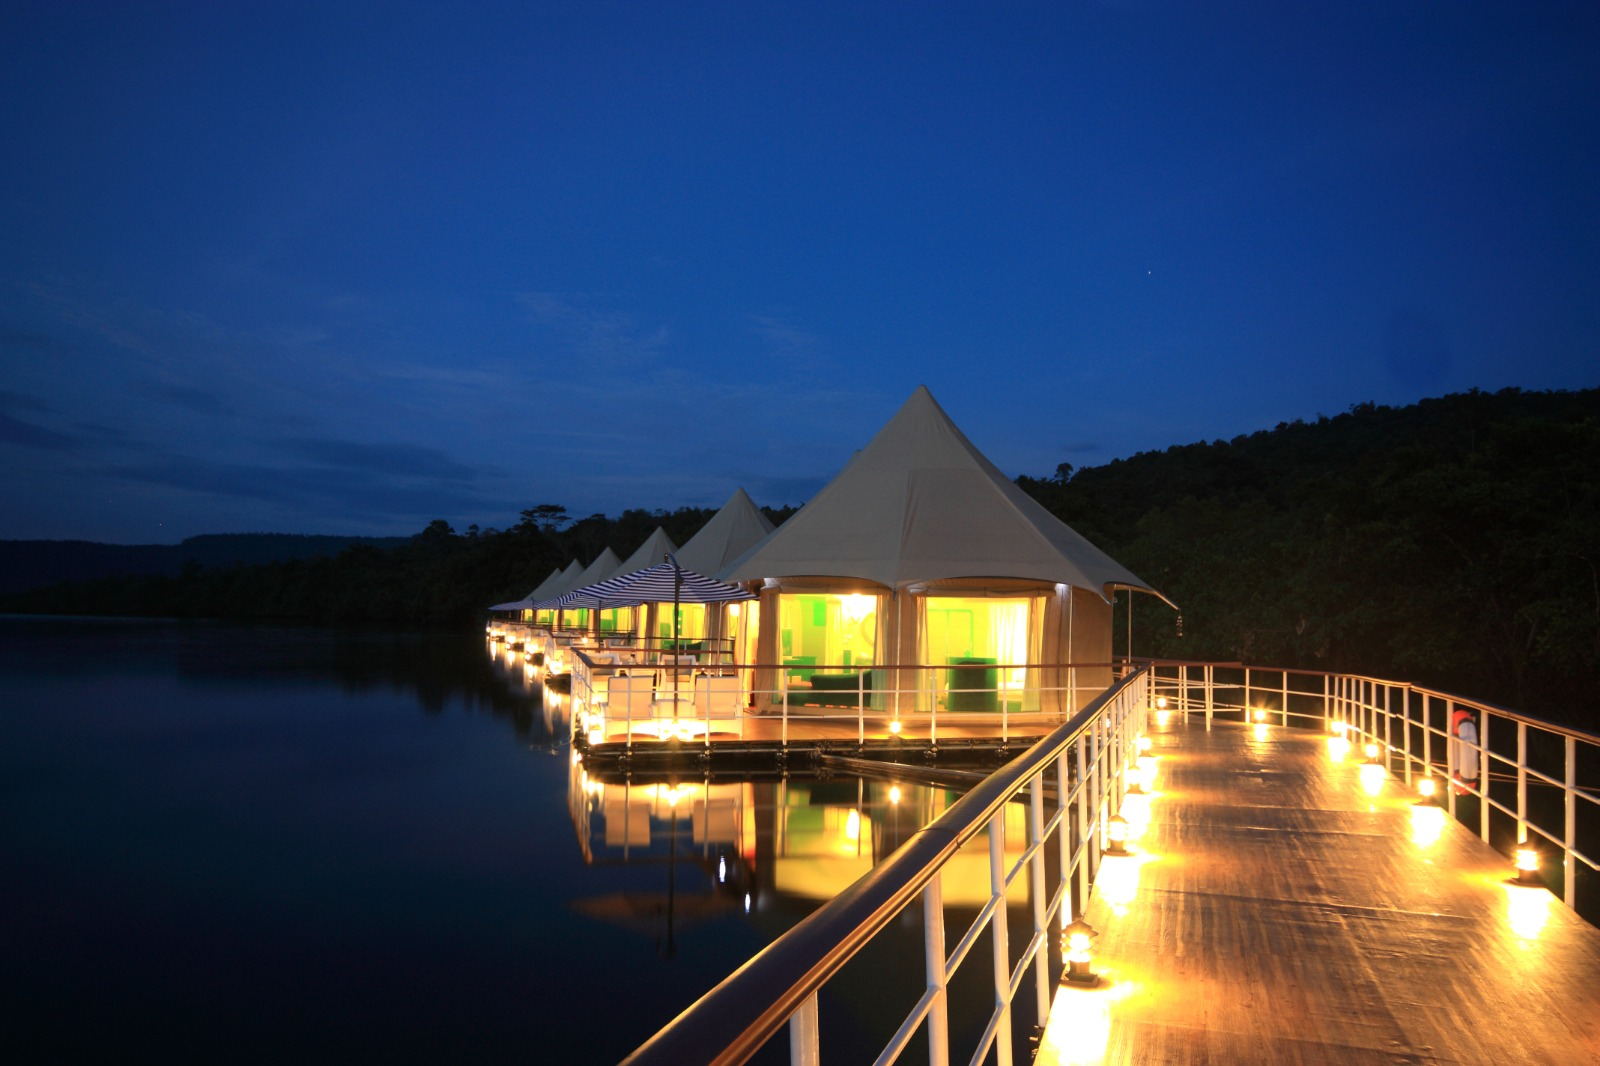 Luxury and Glamping Tents handcrafted to make a lagoon lodge